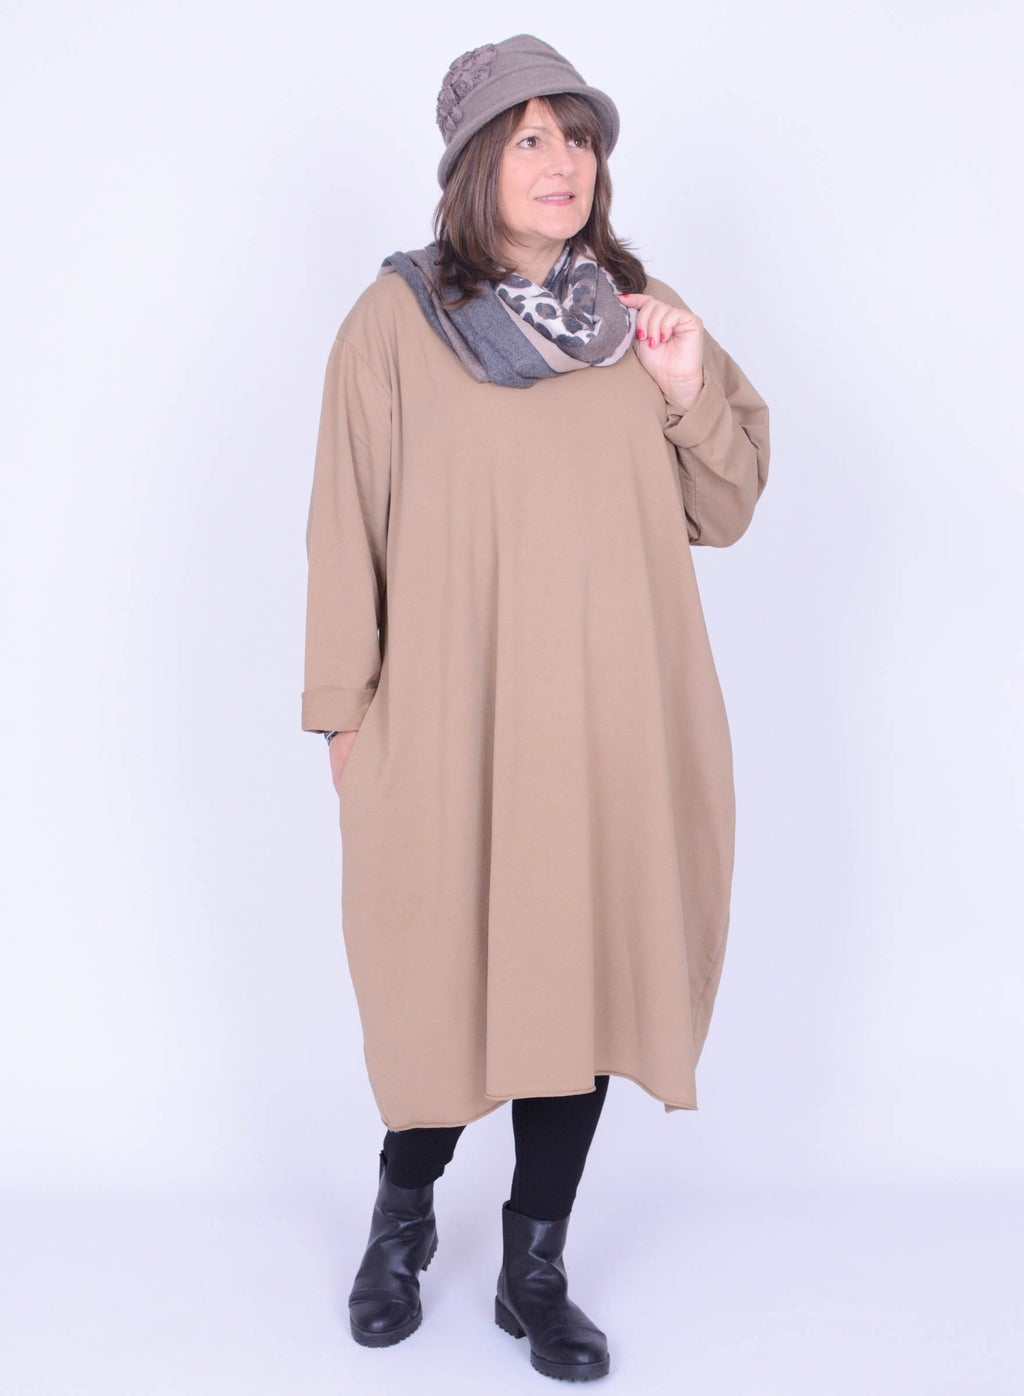 V Neck Long Tunic Dress with Pockets - 20330 - Pure Plus Clothing